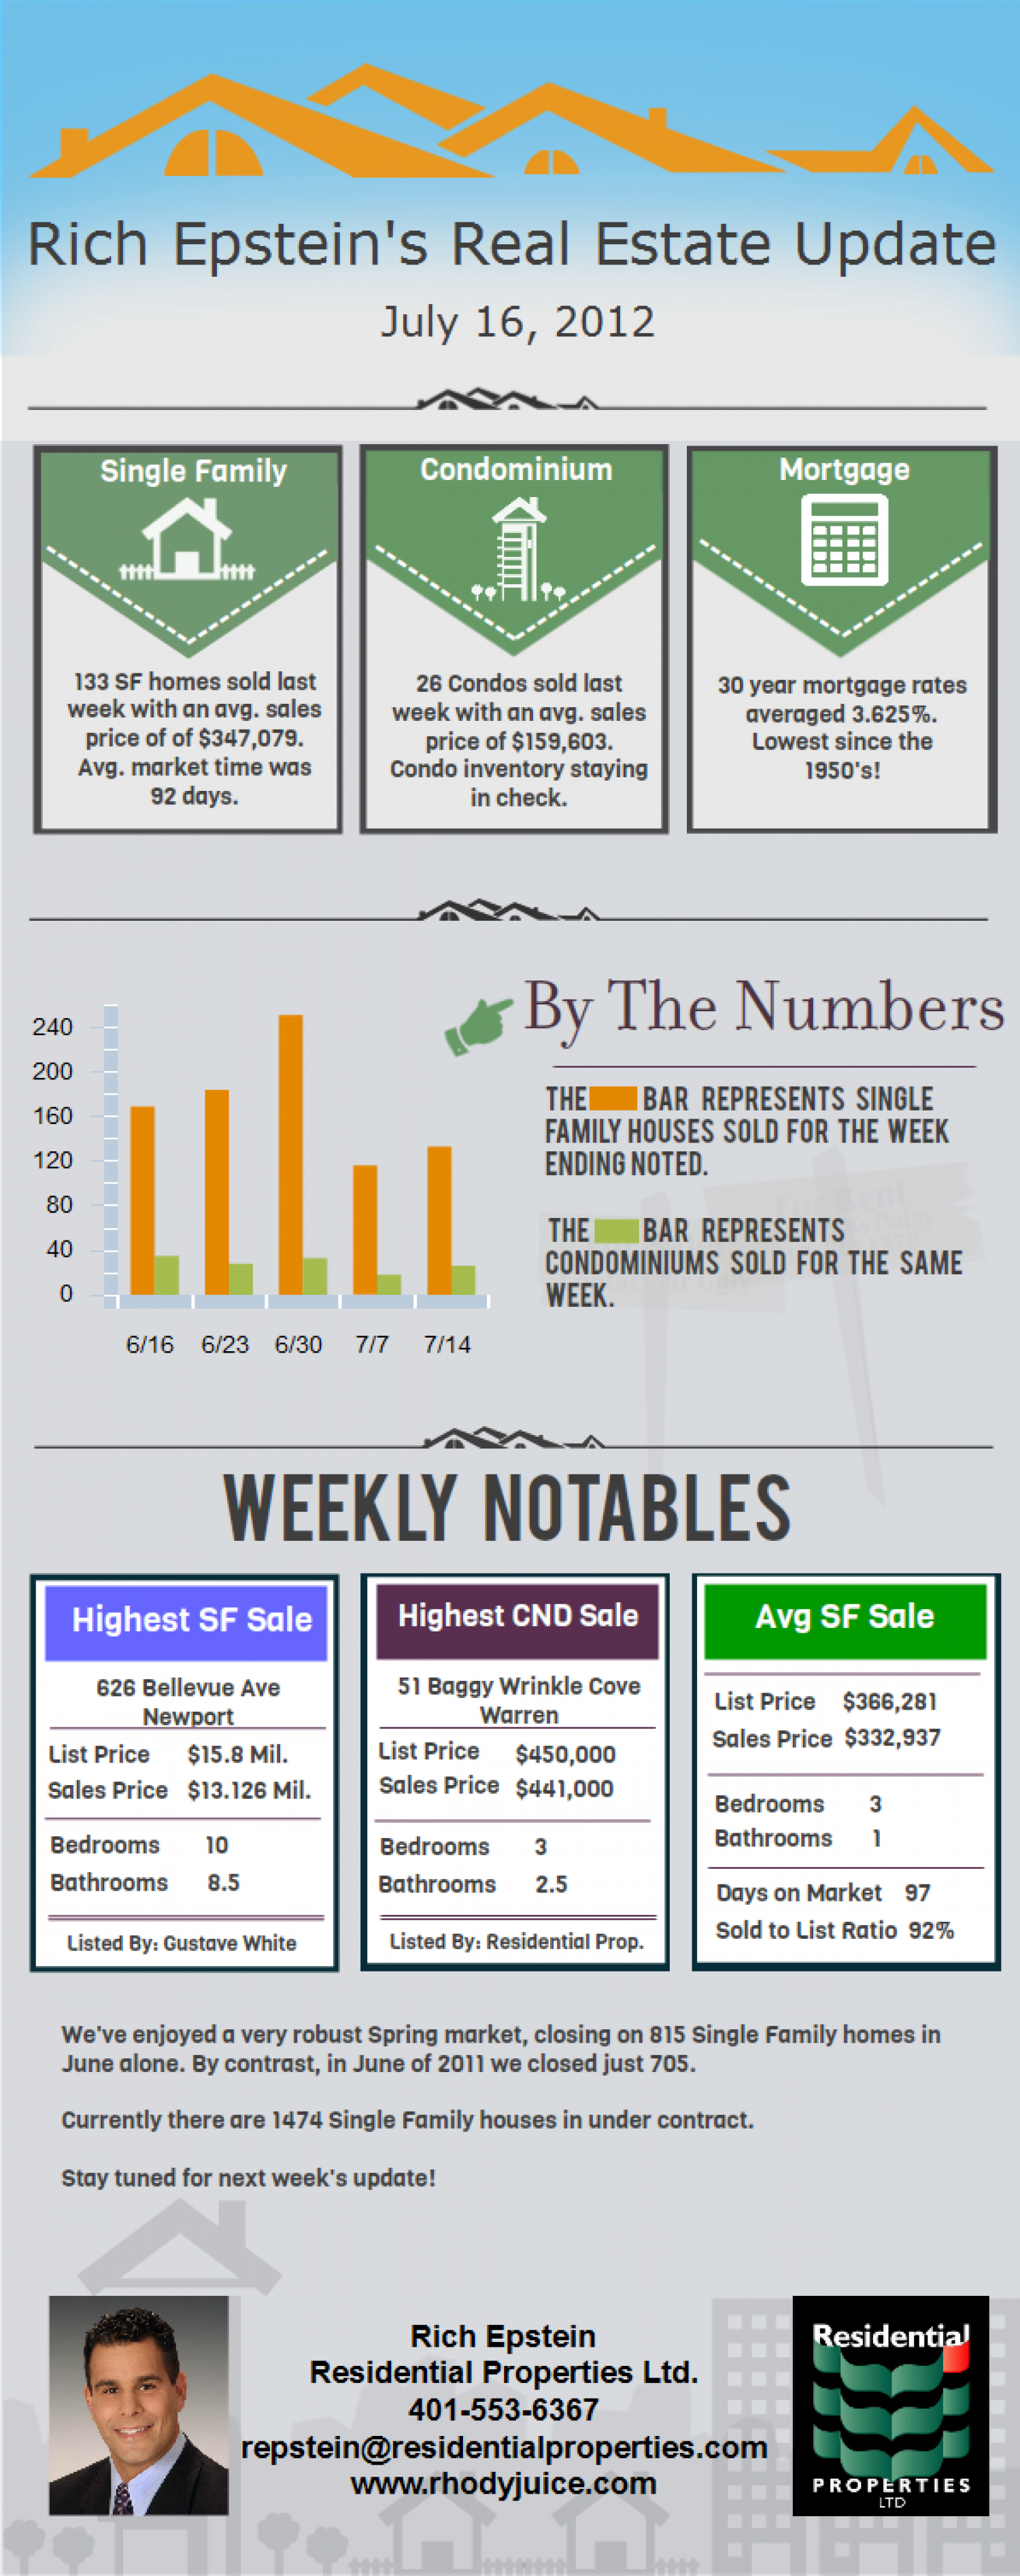 RI Real Estate Update Infographic